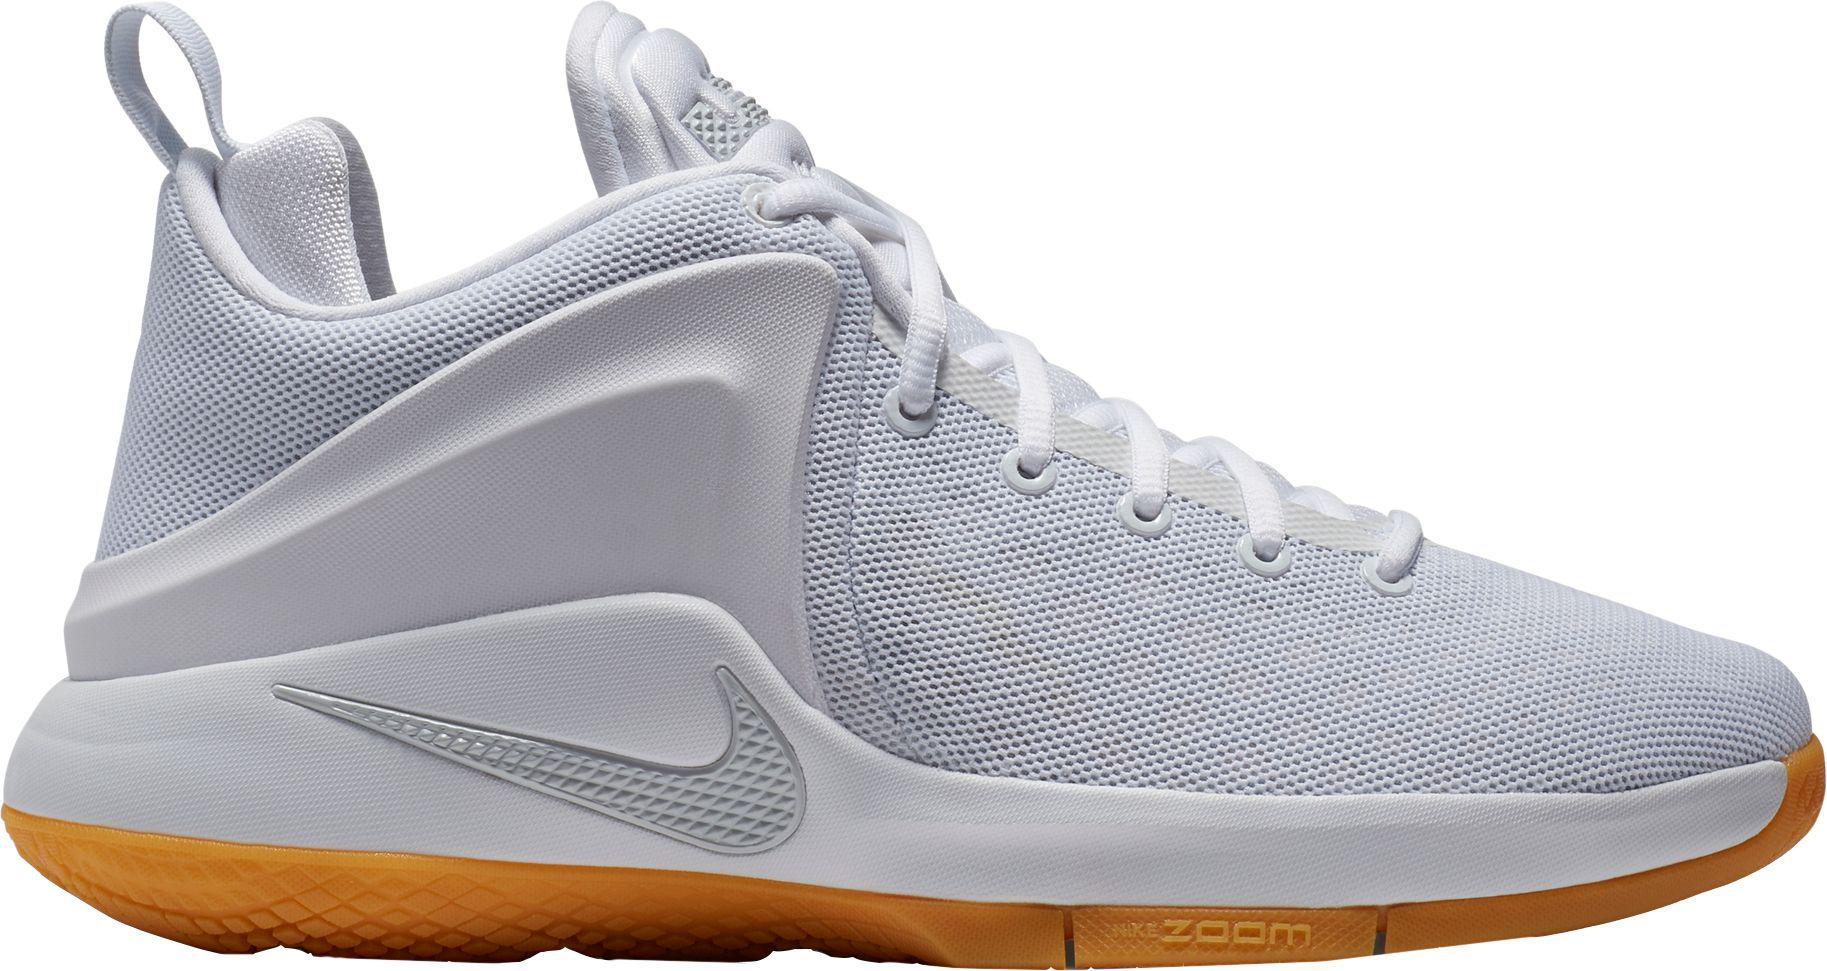 66295ccc9f0 ... coupon for lyst nike zoom witness basketball shoes in white for men  4d11c ca8e8 switzerland nike lebron ...